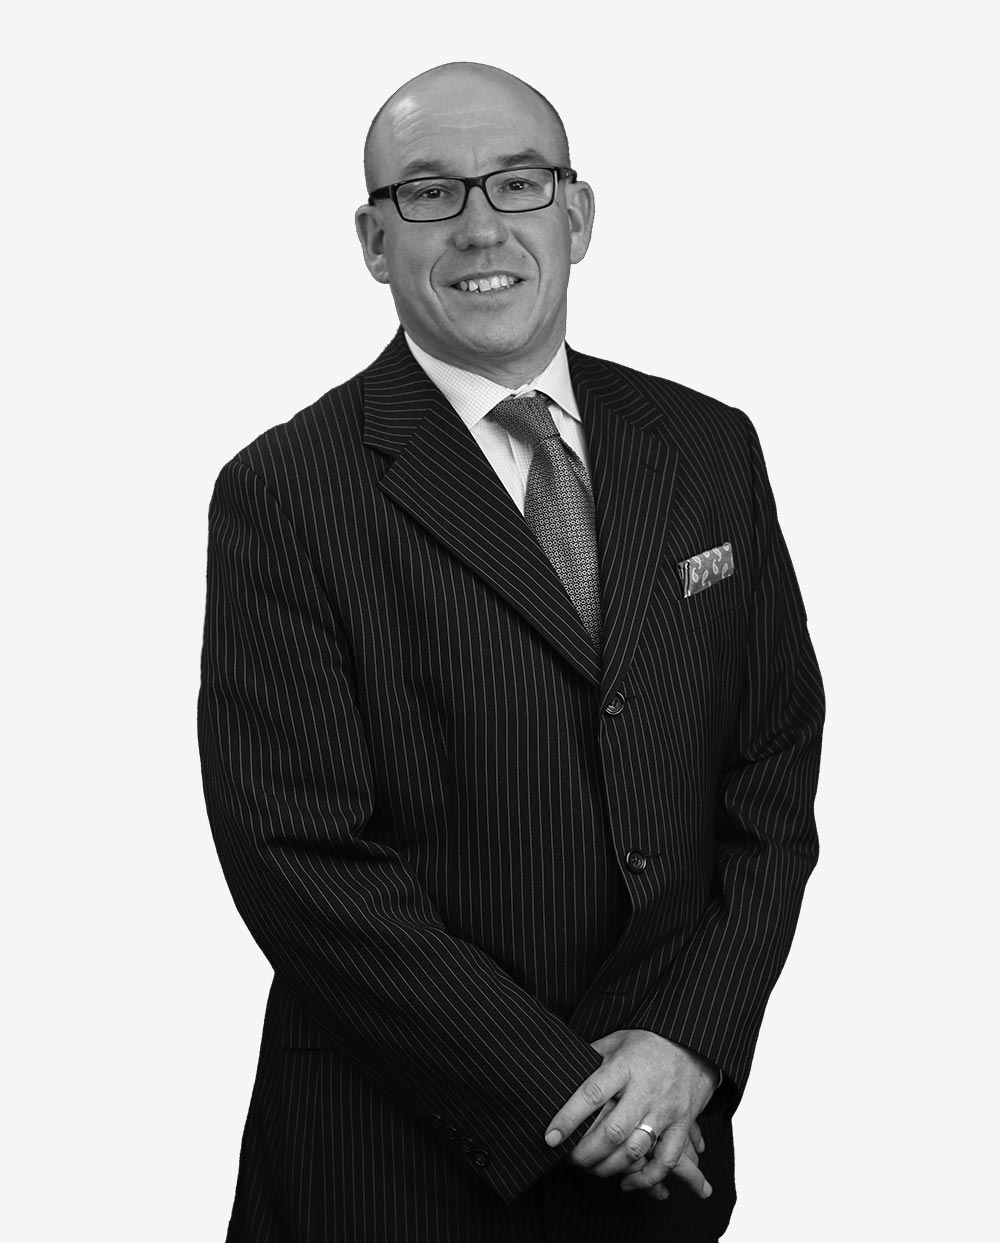 Me Jean-Sebastien Boucher, attorney | Team member of Barrette & Associates